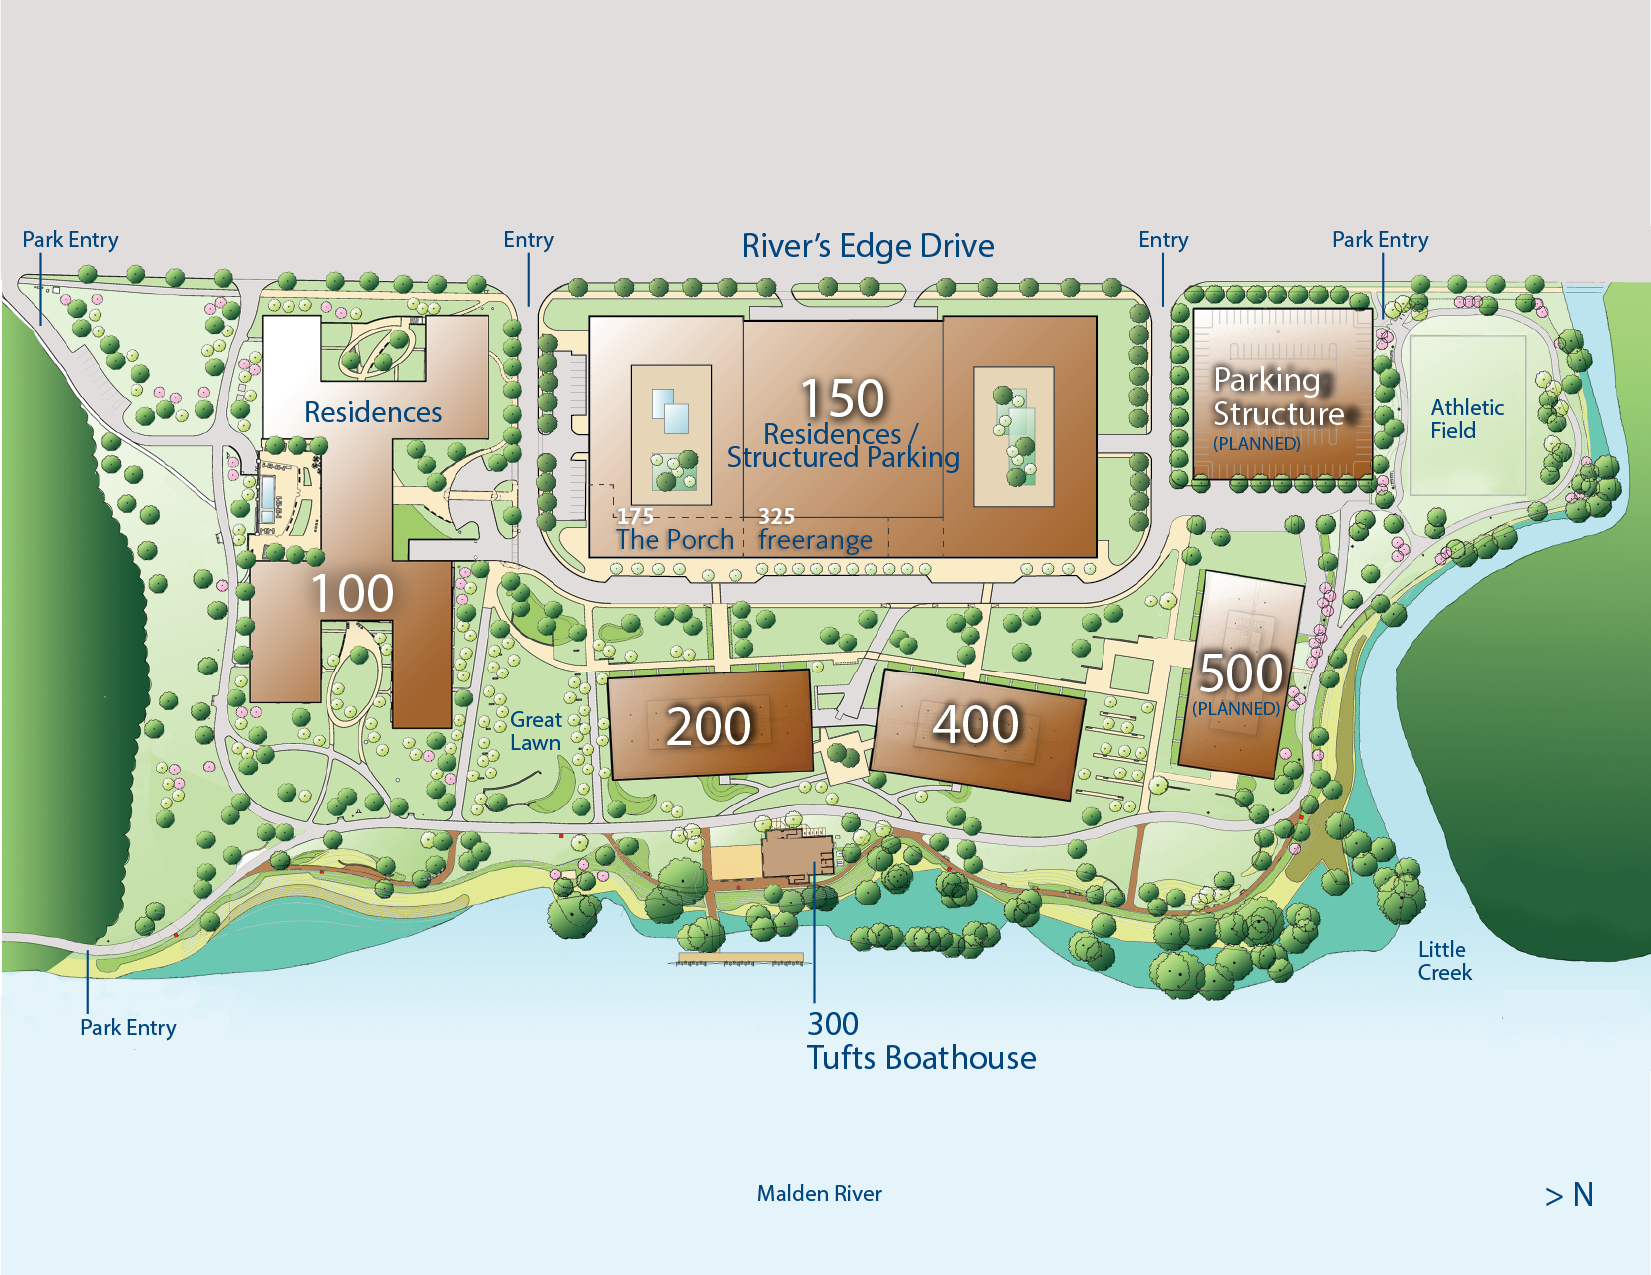 9-16-19 Site Plan Revised